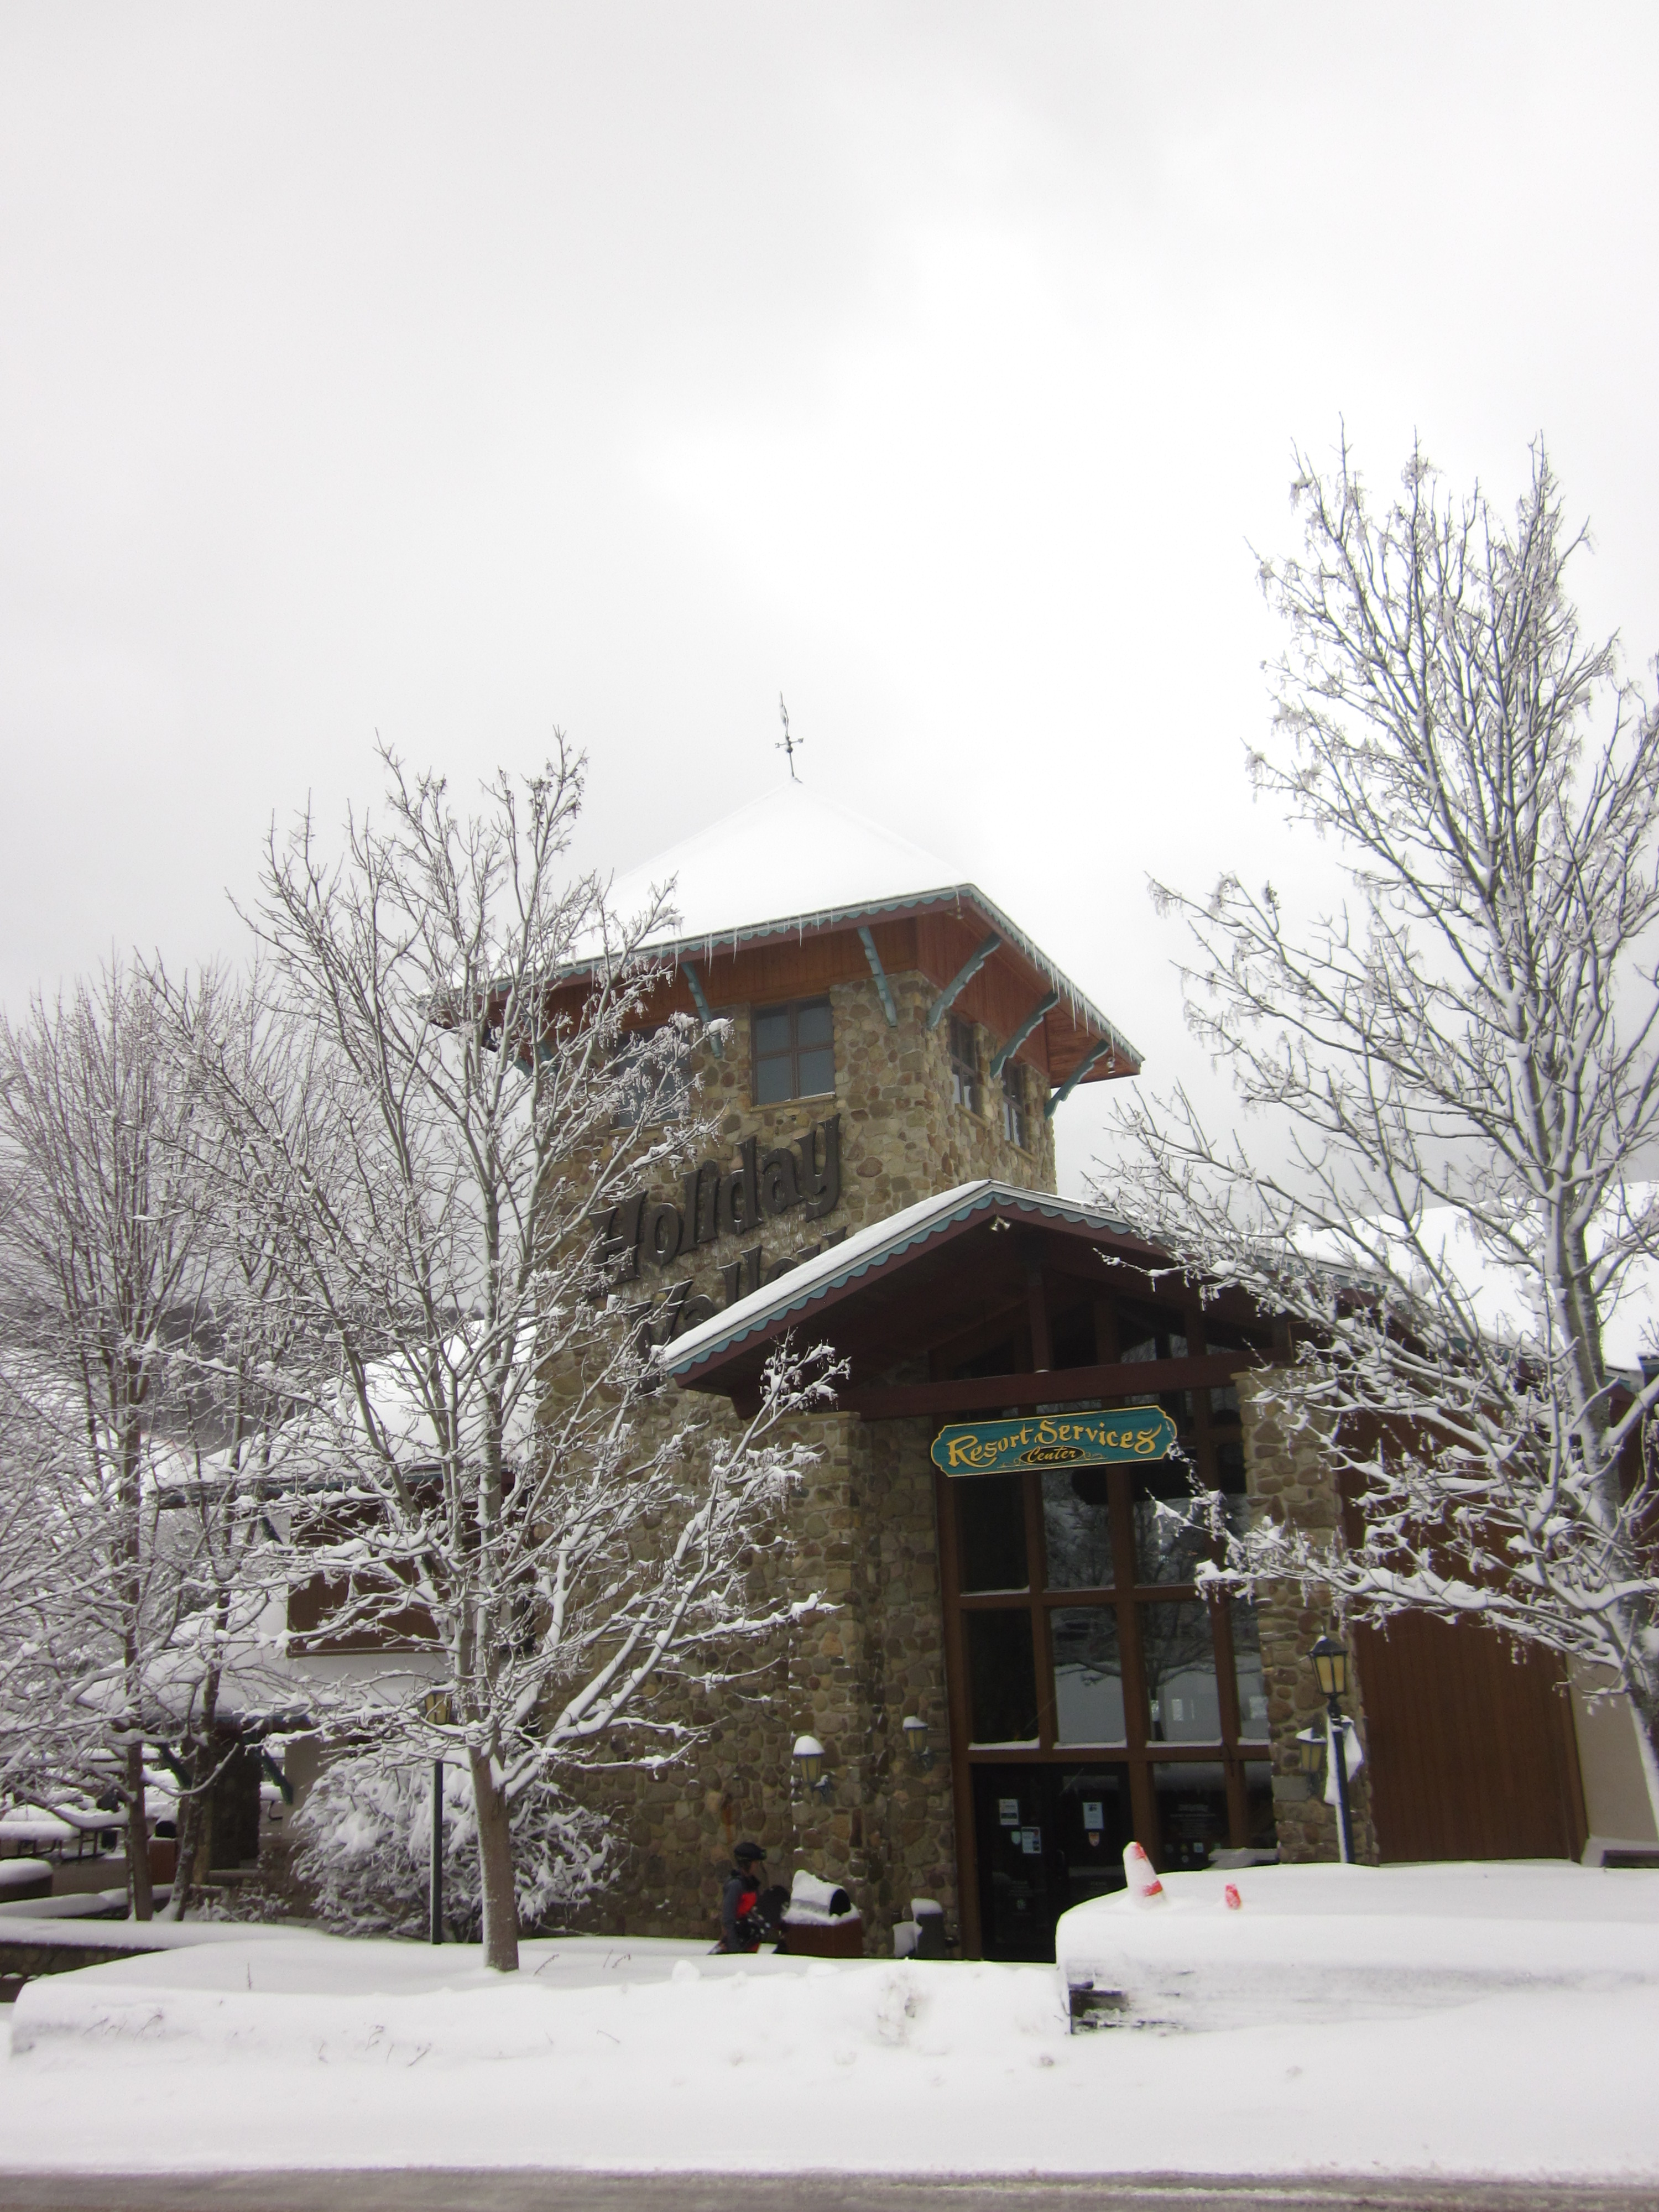 March 2 snowstorm Resort Services Center